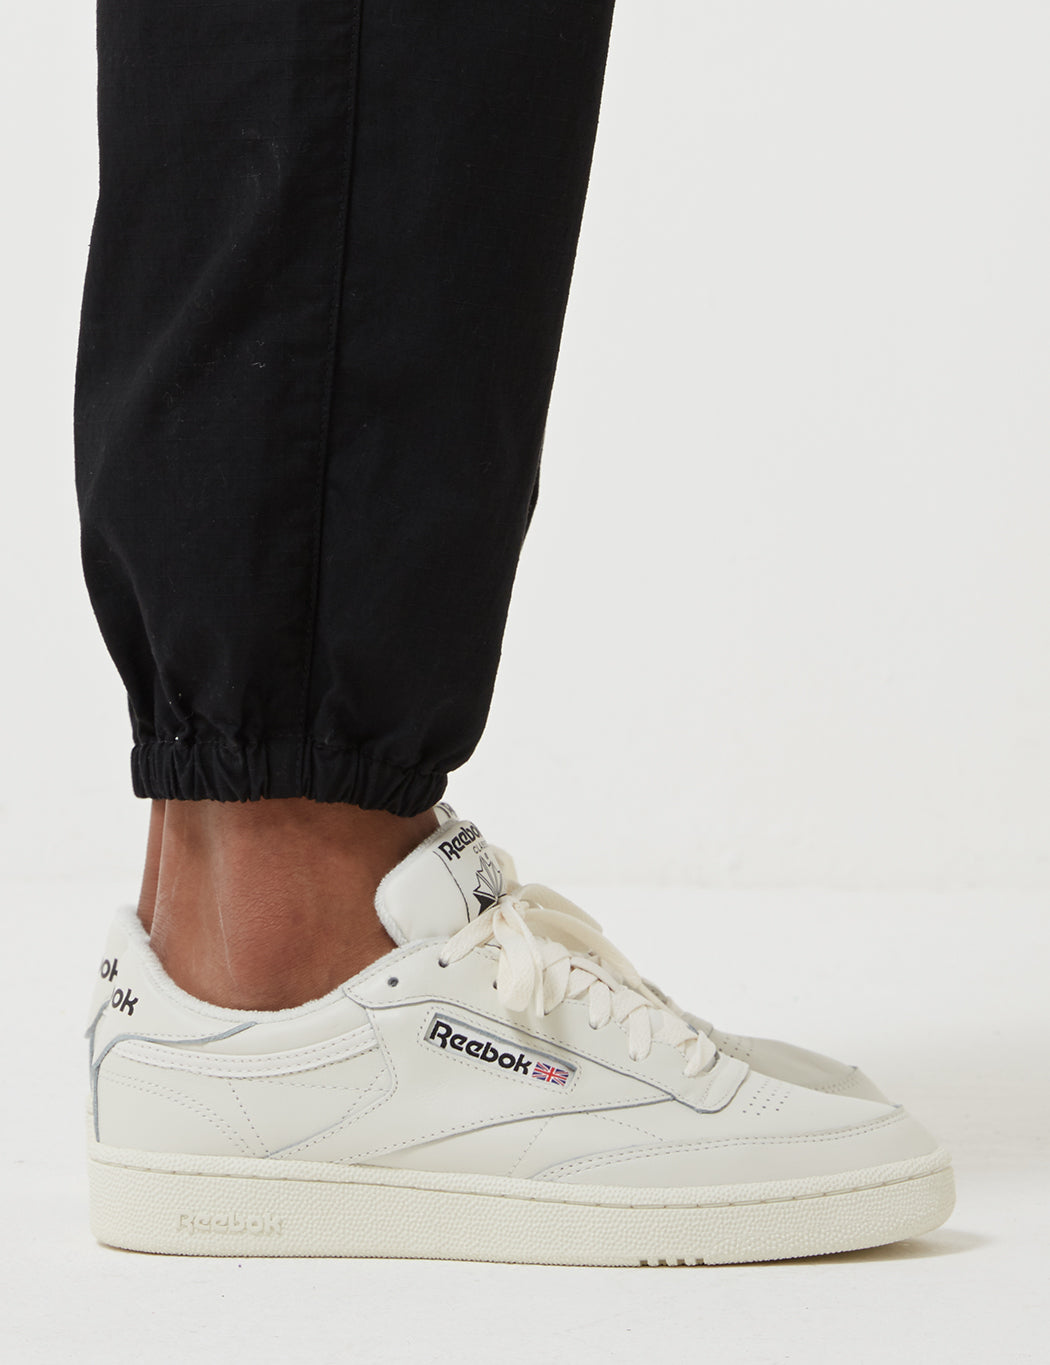 3b41ac8bec33 ... Reebok Club C 85 MU (CN3924) - Chalk Black ...